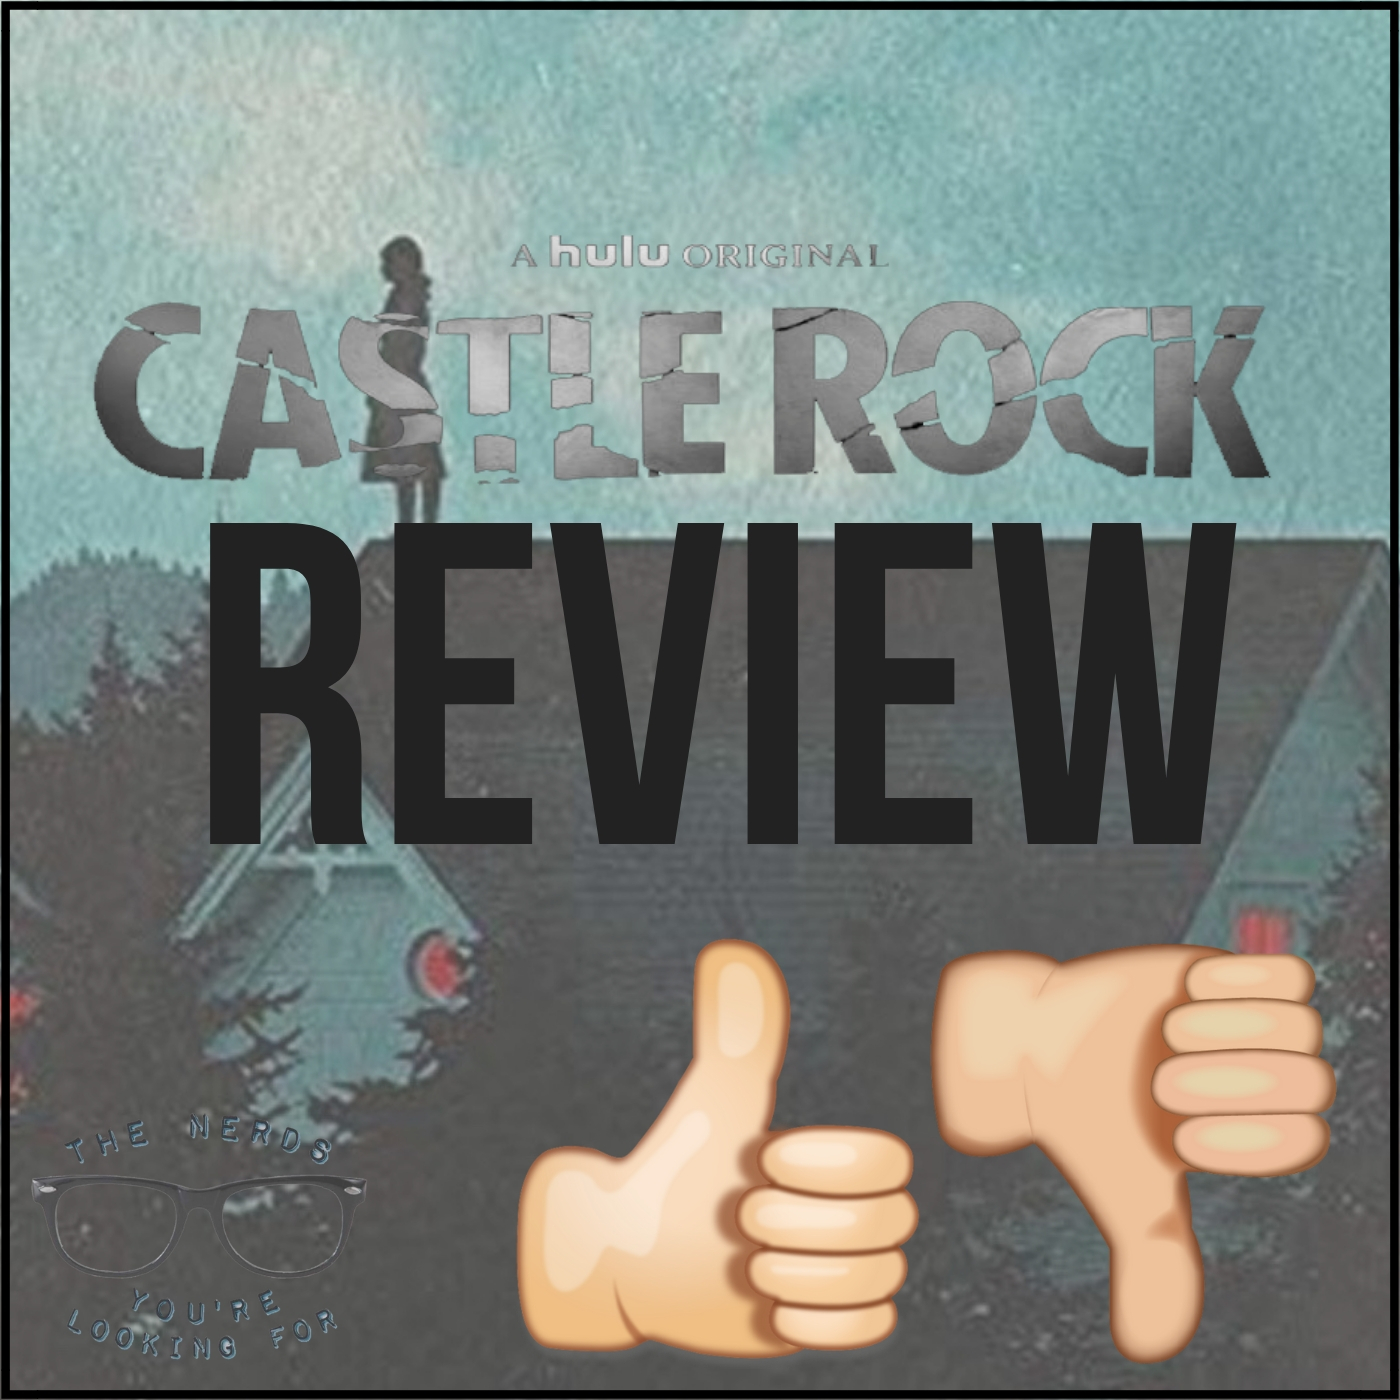 Castle Rock Season 1 Review | The Nerds You're Looking For